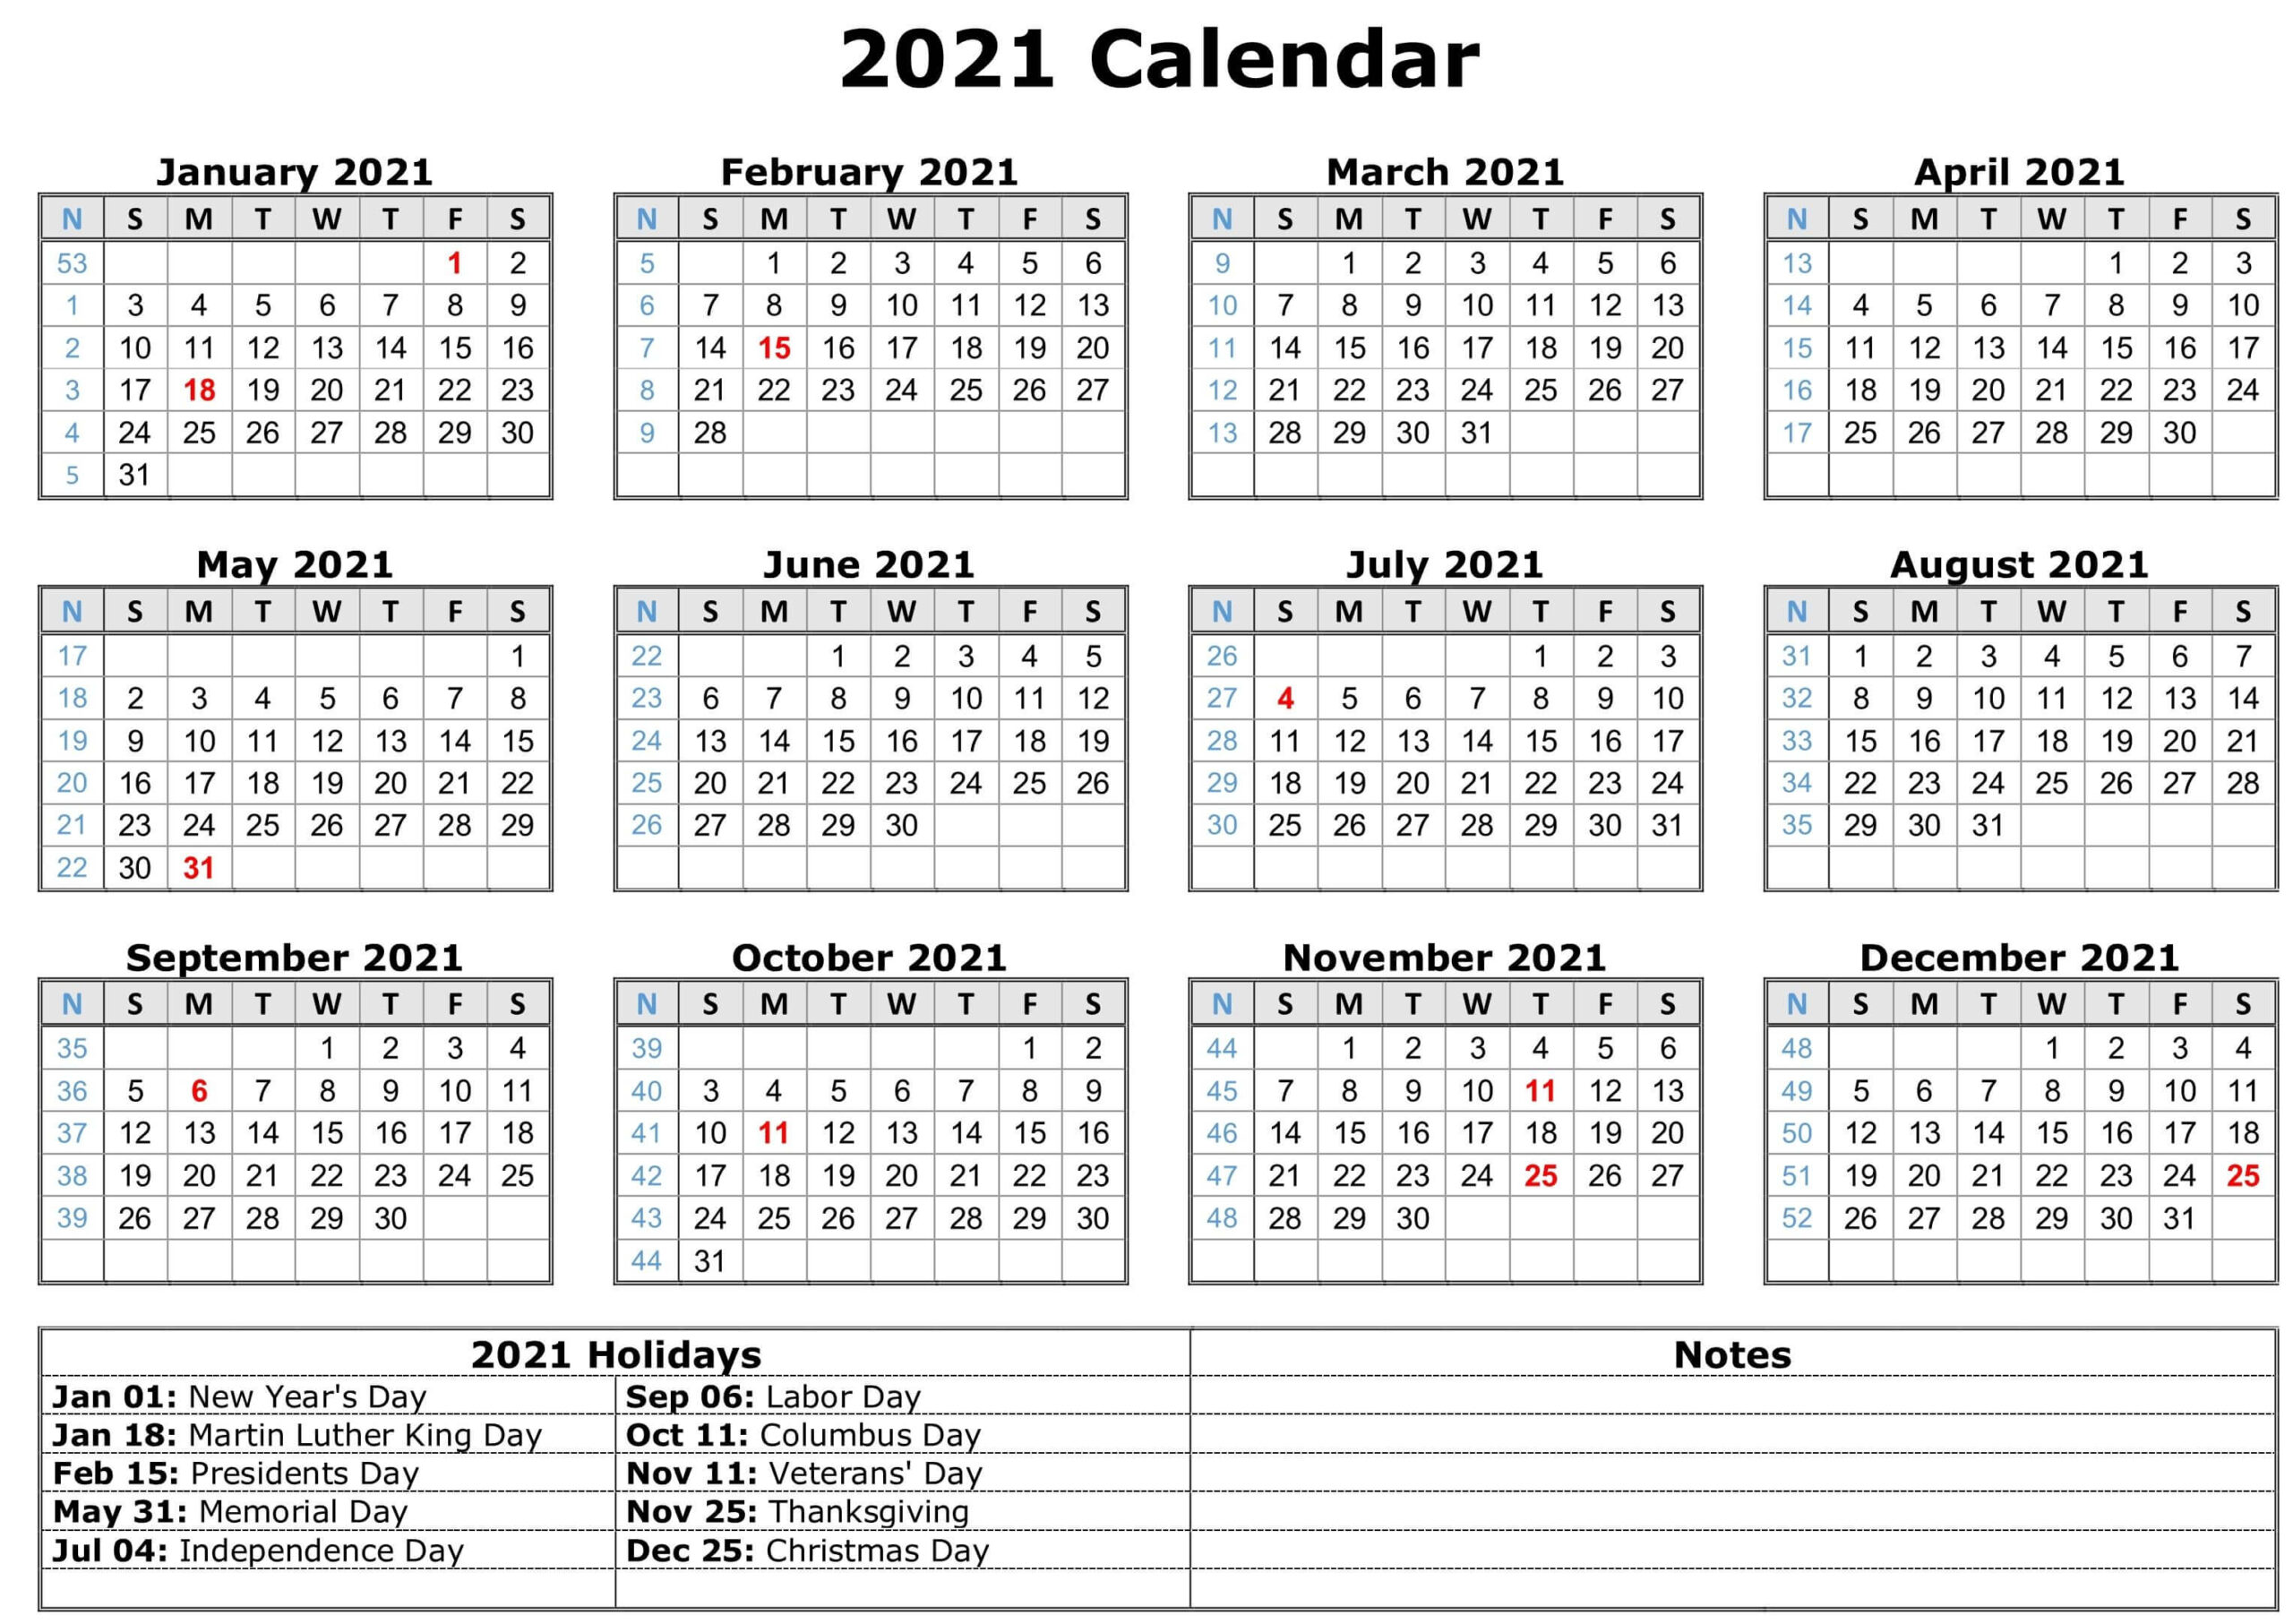 Free Yearly Printable Calendar 2021 With Holidays inside 2021 Writable Calendars By Month